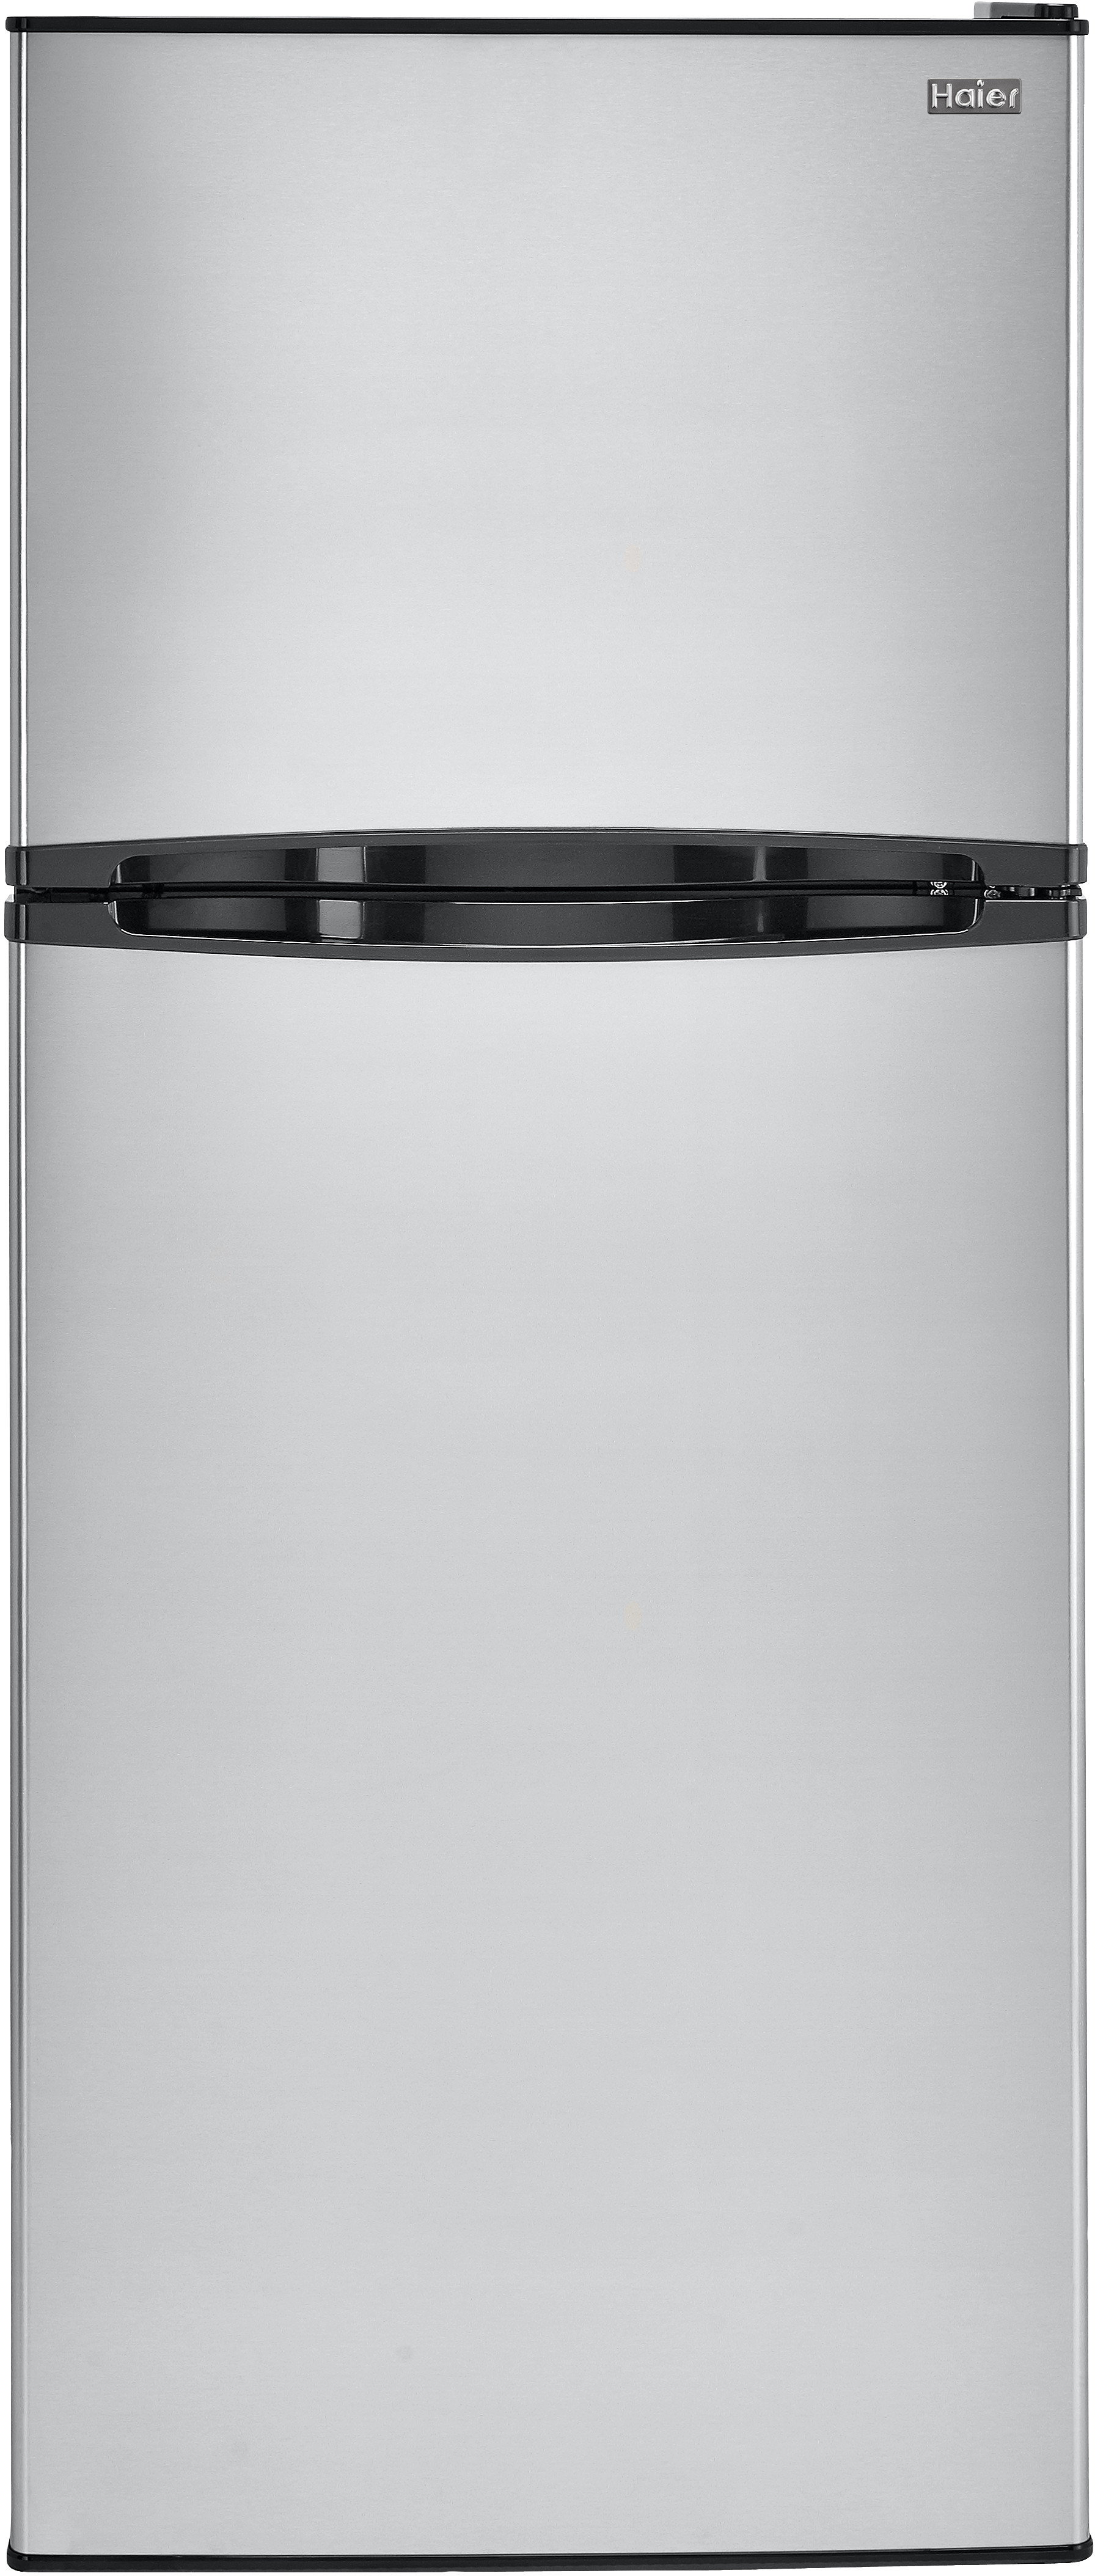 Haier HA12TG21 115 cu ft Top Mount Refrigerator with 2 Spill Proof Glass Shelves Humidity Controlled Crisper 4 Door Bins 1 Freezer Shelf 2 Freezer Door Bins and ADA Compliance